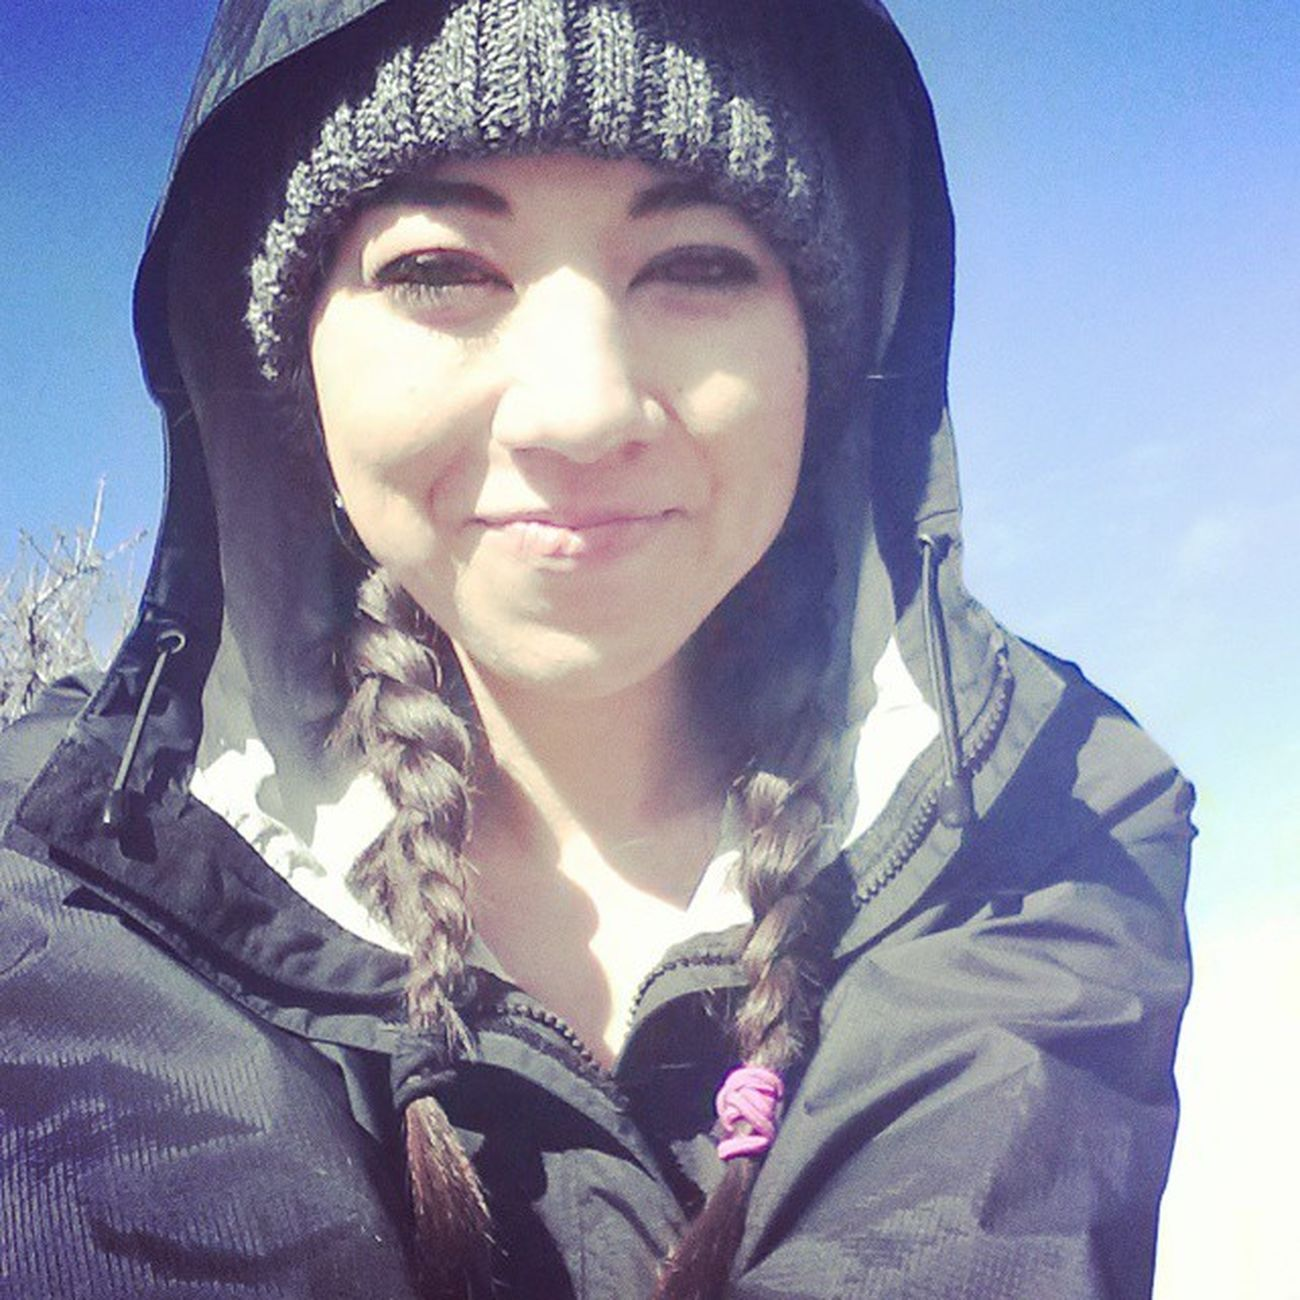 Hiked manastash, was chilly at the top but woo made it!!!!